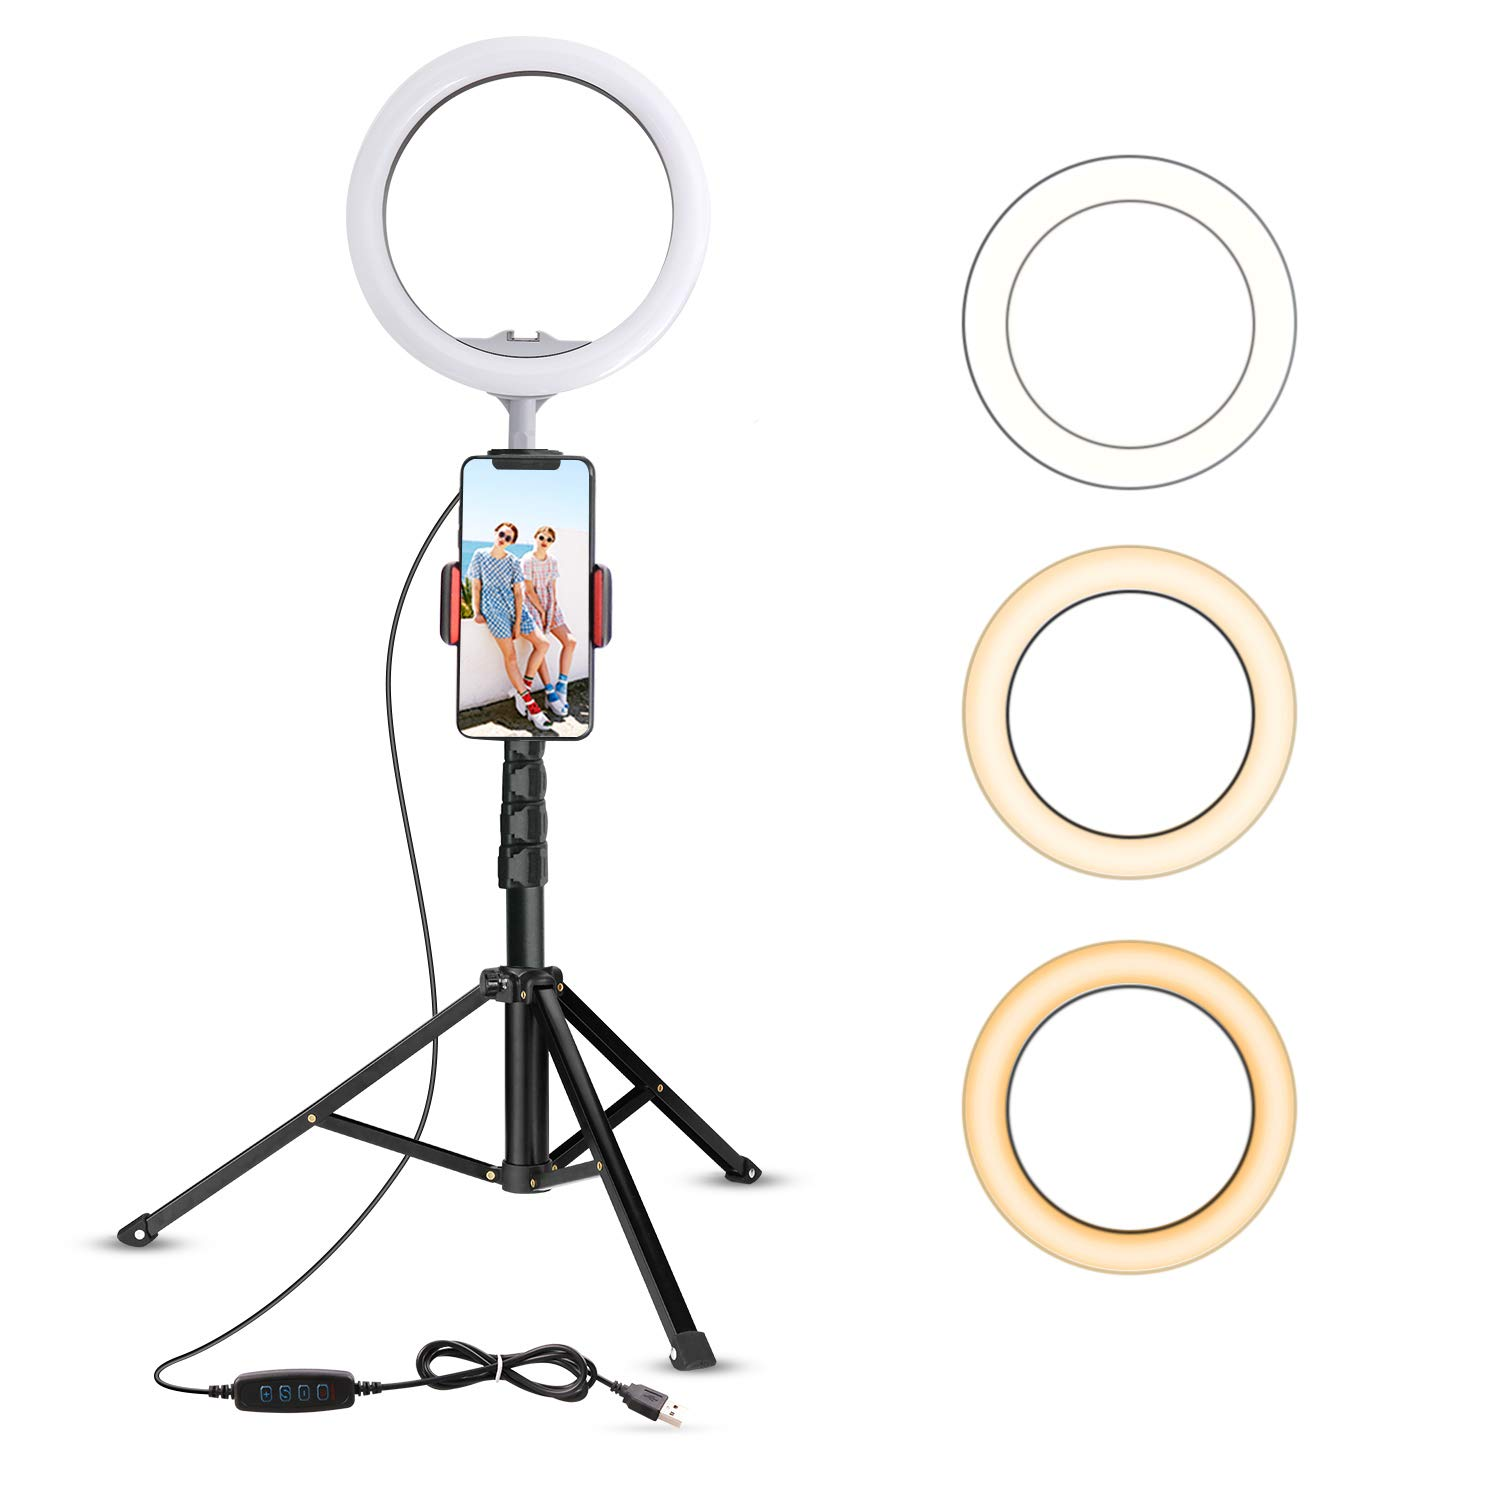 10.2'' Selfie Ring Light with Tripod Stand & Cell Phone Holder for Live Stream/Makeup, UBeesize Mini Led Camera Ringlight for YouTube Video/Photography Compatible with iPhone Android (Upgraded) by UBeesize (Image #1)